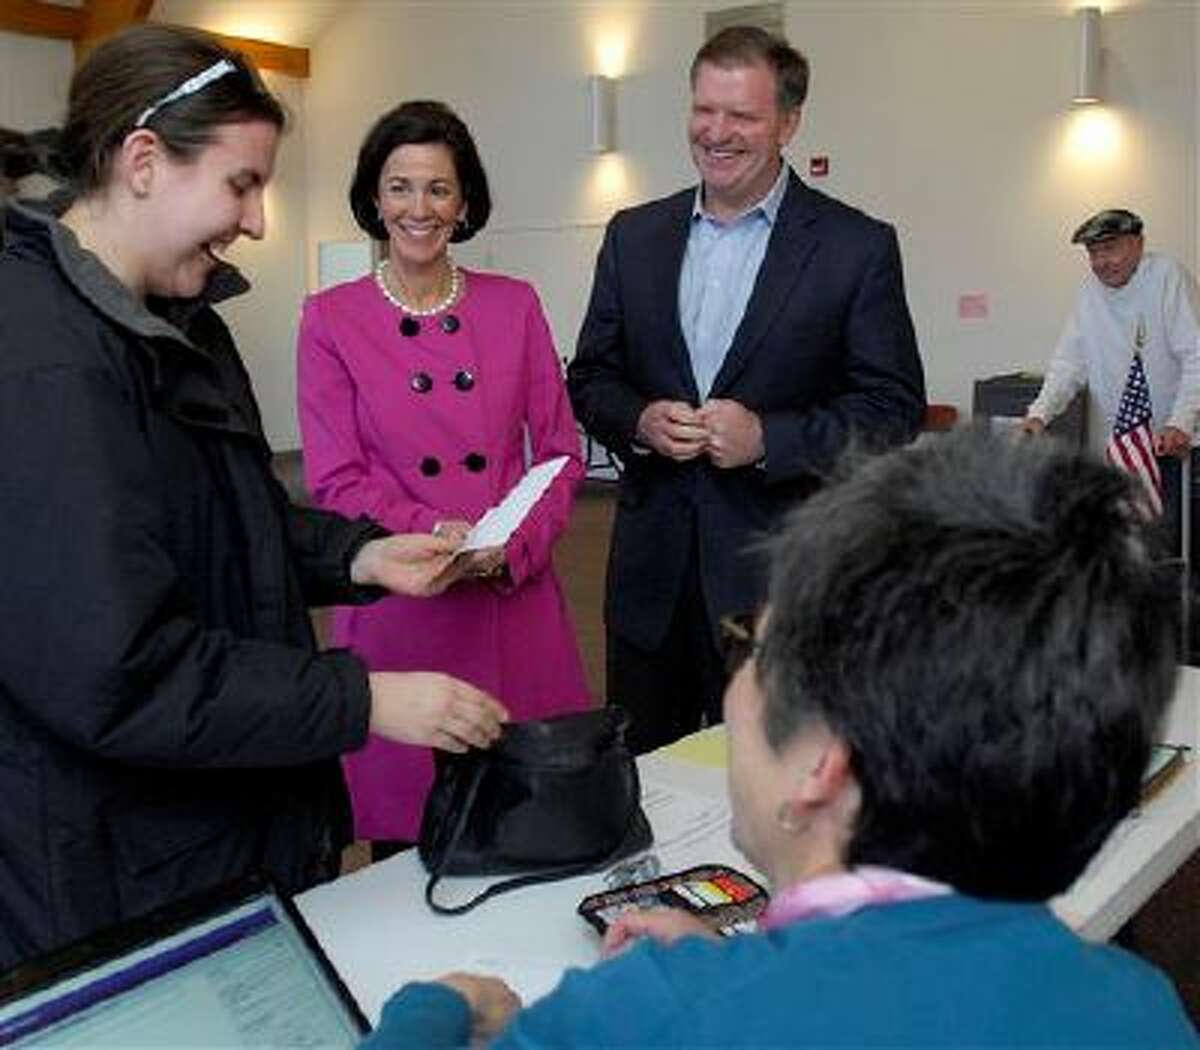 State Senator Bill Brady and his wife Nancy talk with fellow voter Katie Graehling of Bloomington while checking in with election judge Karen Fleming for their ballots as they prepare to vote in the 2014 primary election Tuesday. (AP Photo/The Pantagraph, Lori Ann Cook-Neisler)